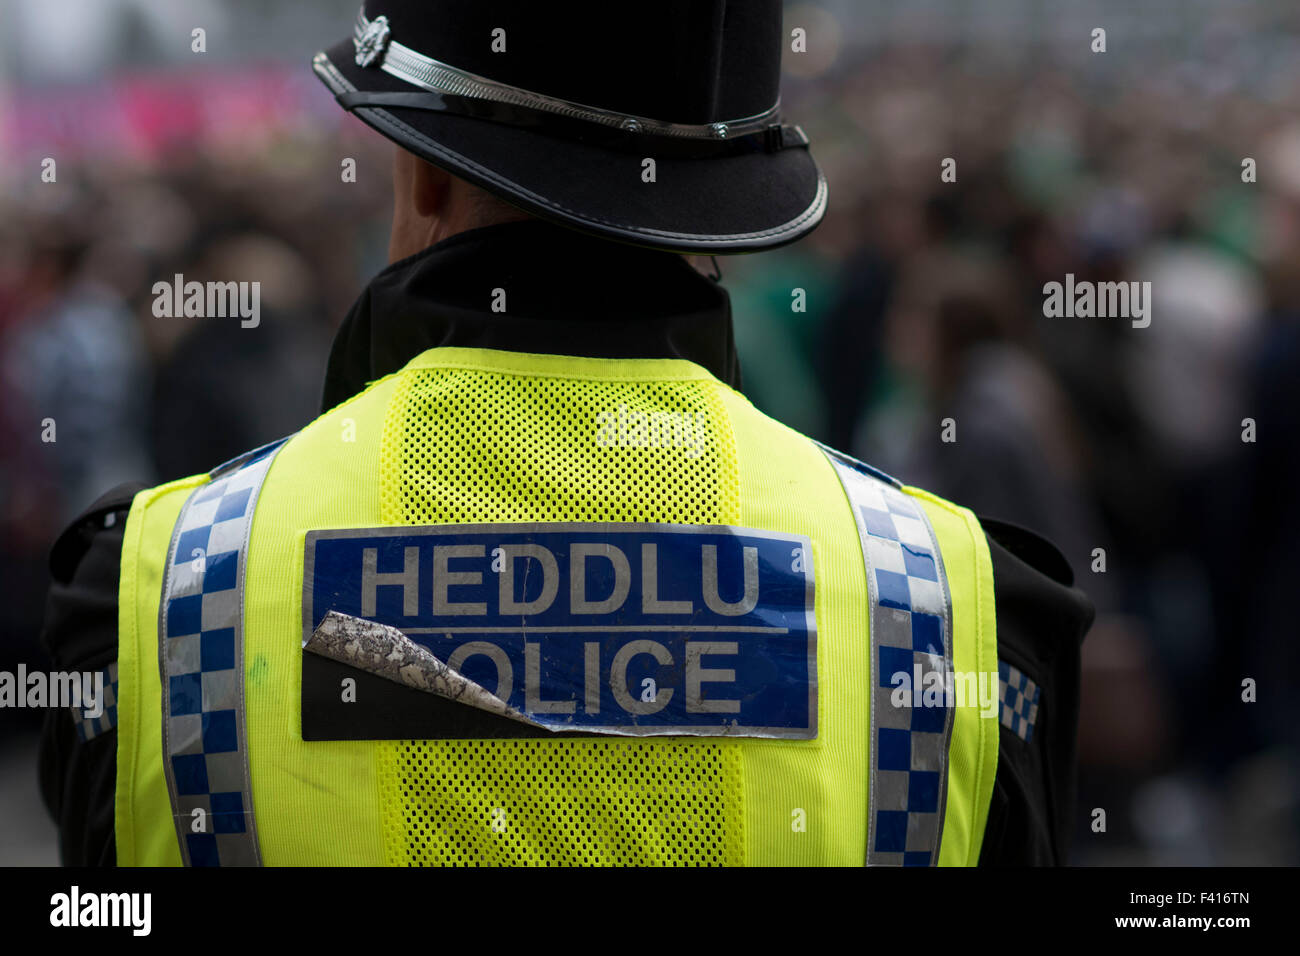 A Welsh police officer looks on at an event. The police force in Wales have suffered cutbacks in recent years. - Stock Image